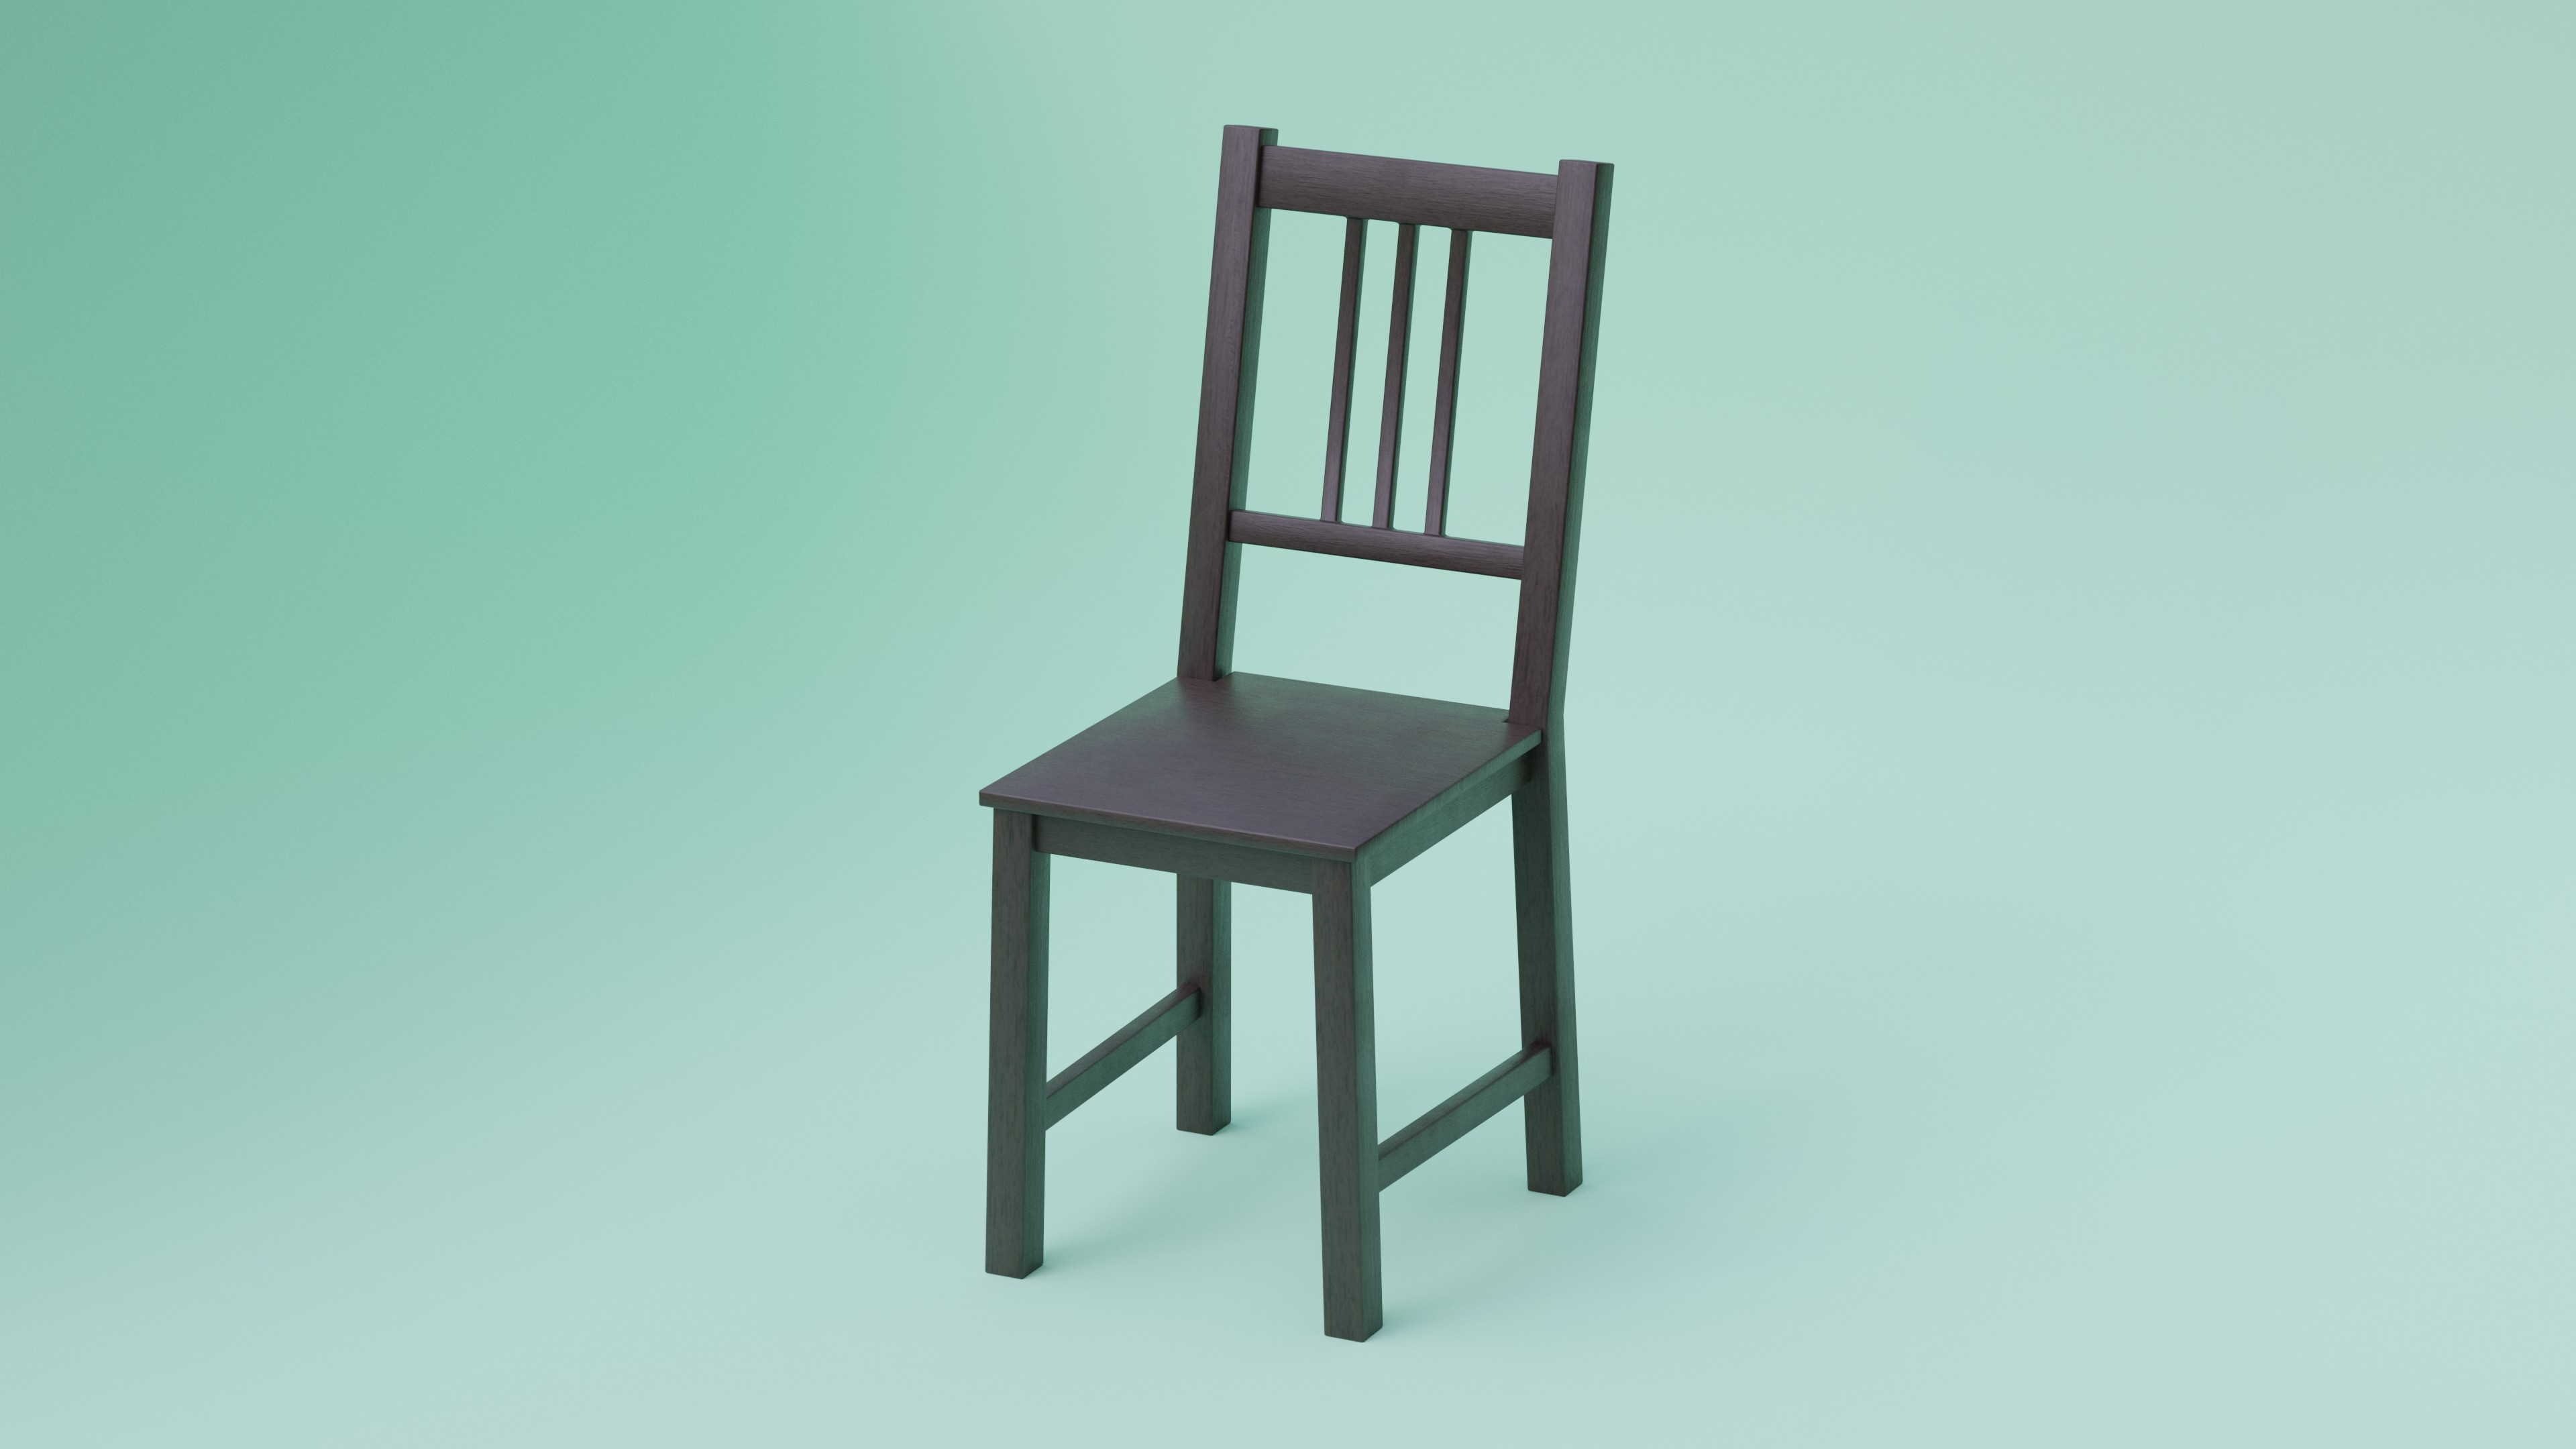 Simple Dark Wood Chair preview image 1